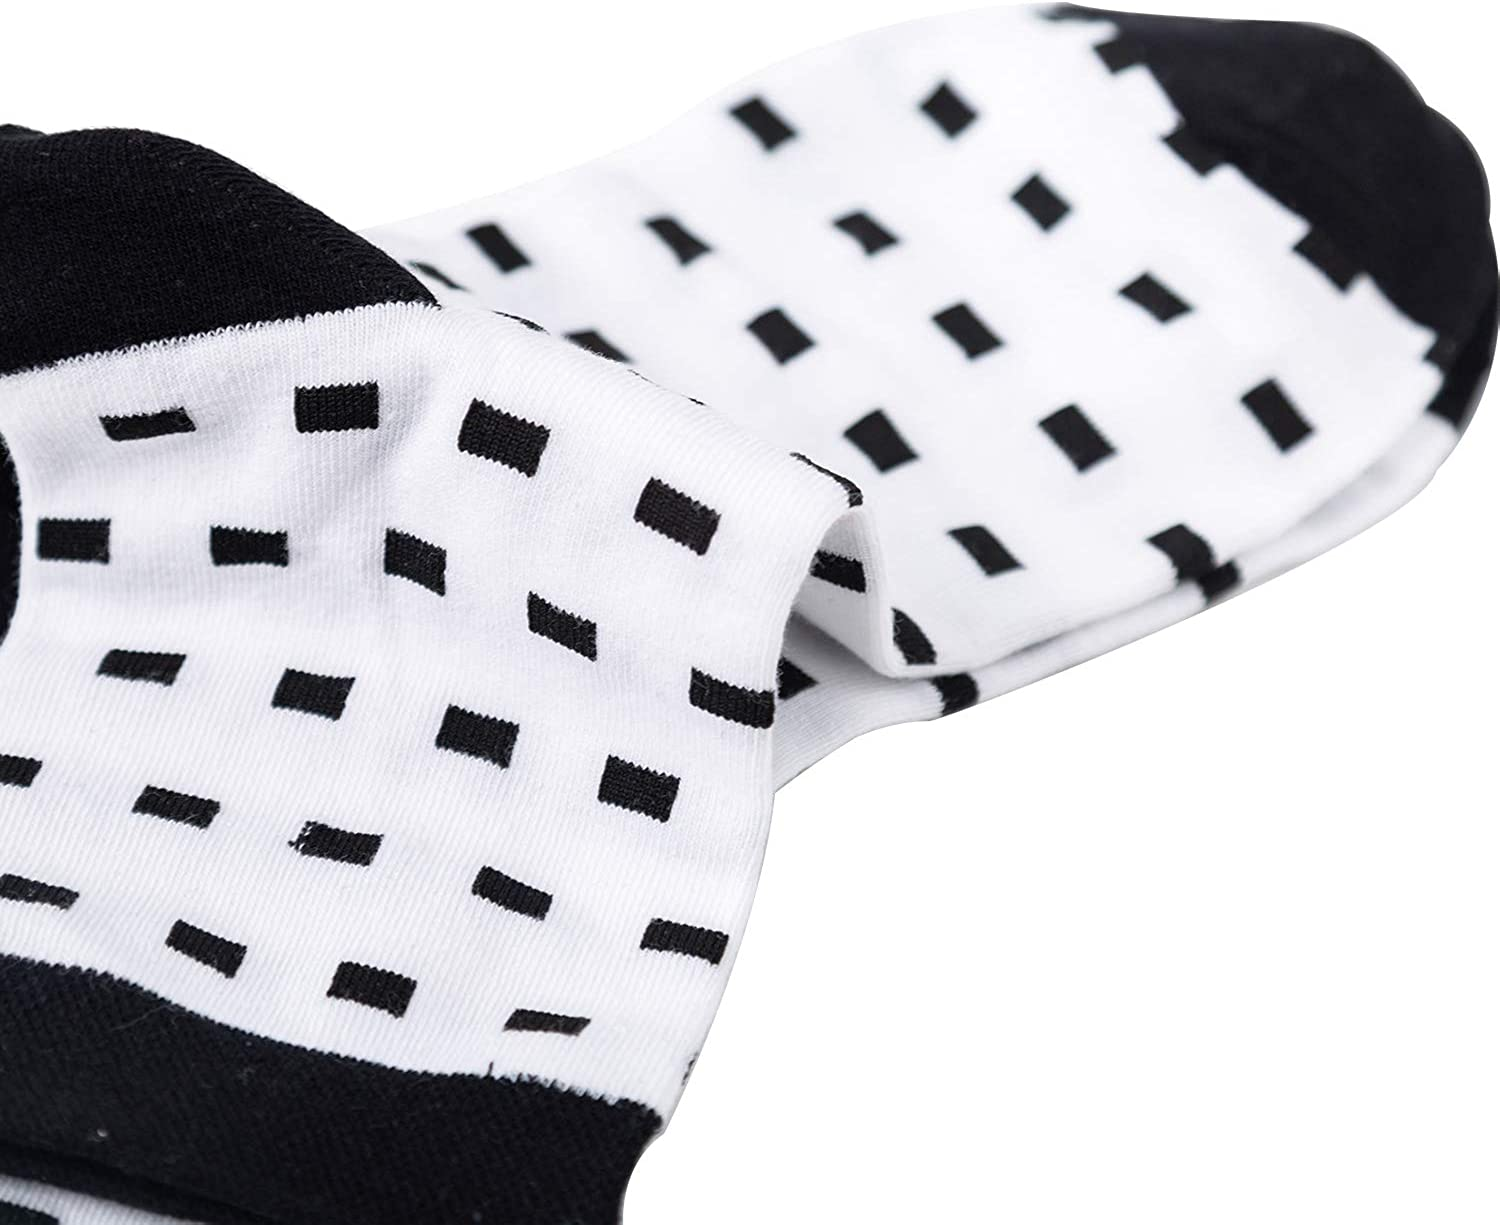 Awesome 360 Womens Casual Socks 5 Pairs Cotton Crew Printed Cute Novelty Colorful Soft Socks